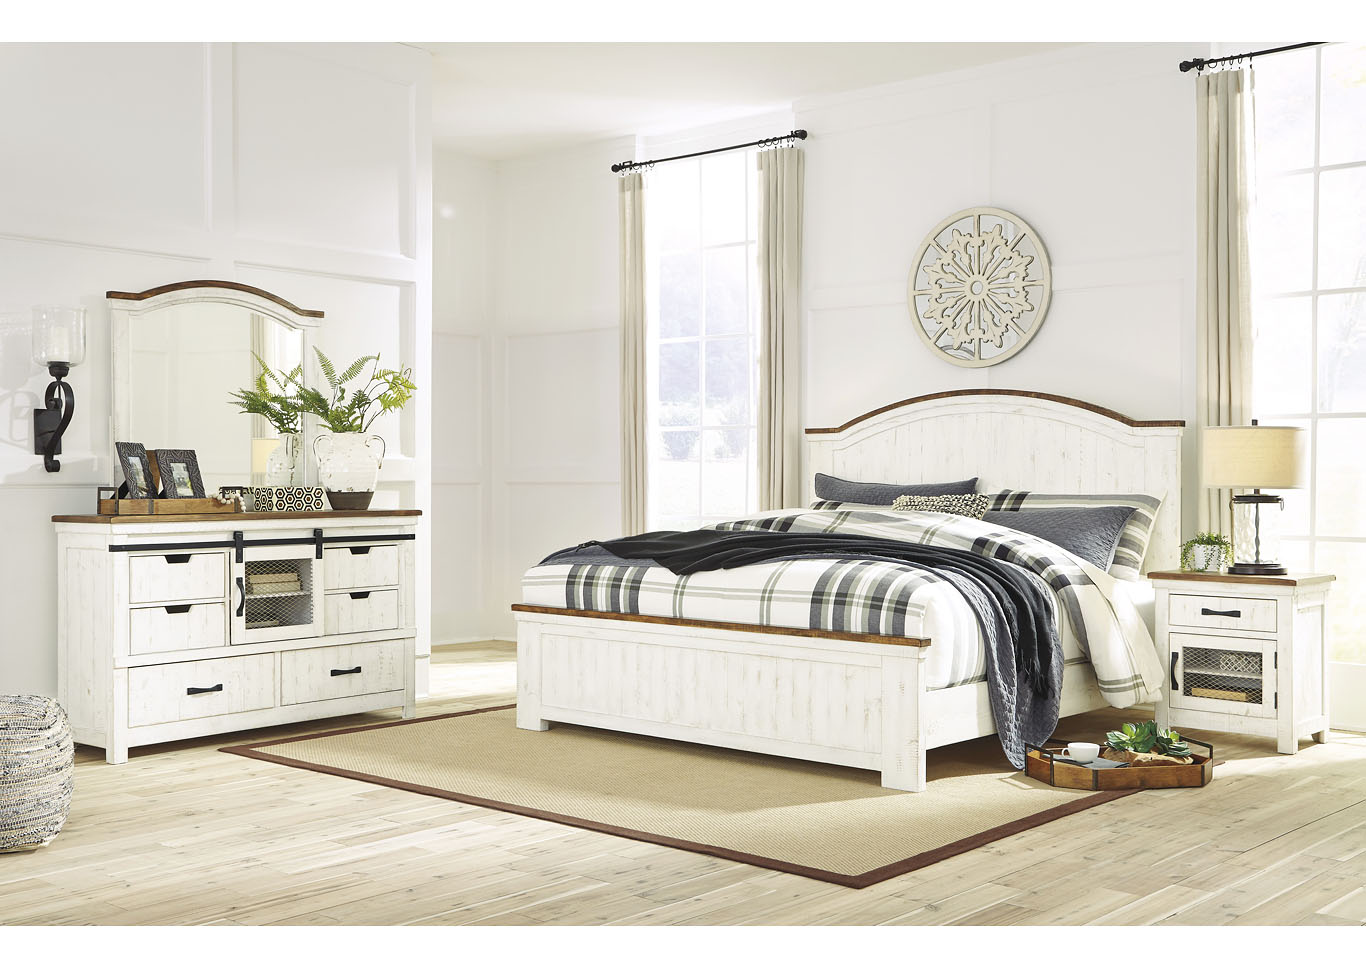 Wystfield White California King Panel Bed w/Dresser & Mirror,Signature Design By Ashley